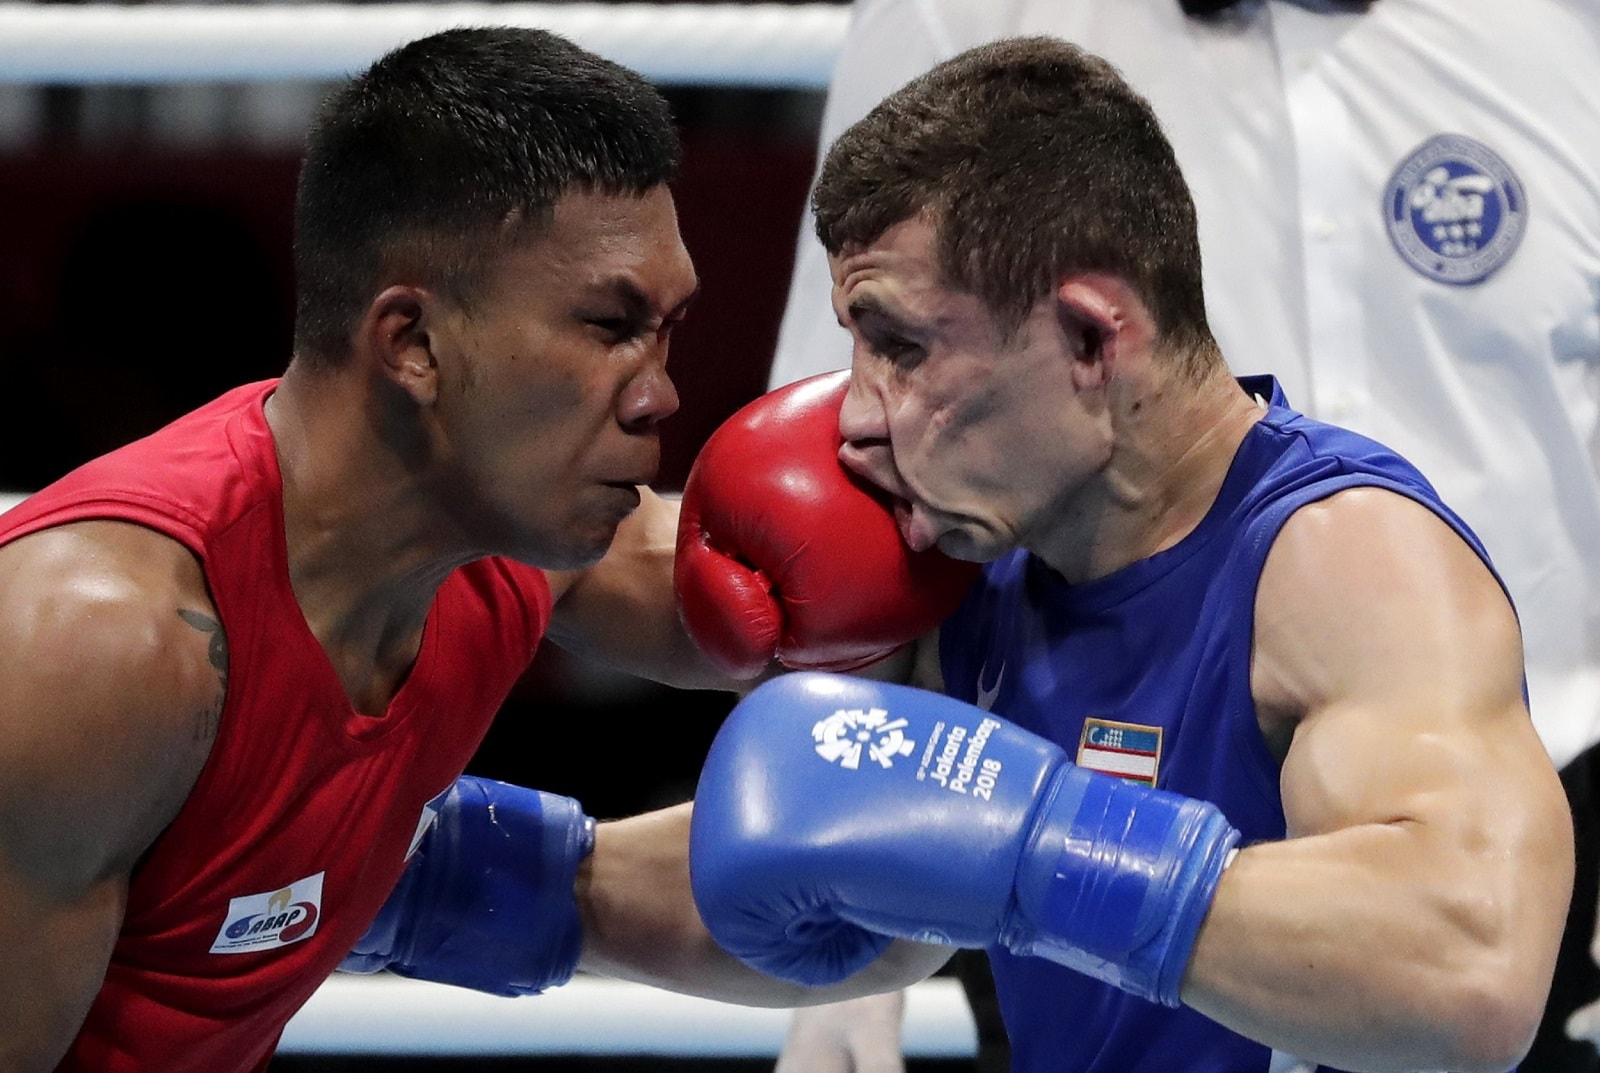 Phillippines' Eumir Felix Marcial, left, lands a blow on the face of Uzbekistan's Israil Madrimov during their men's middleweight boxing semifinal at the 18th Asian Games in Jakarta, Indonesia, on August 31, 2018. (AP Photo/Lee Jin-man)